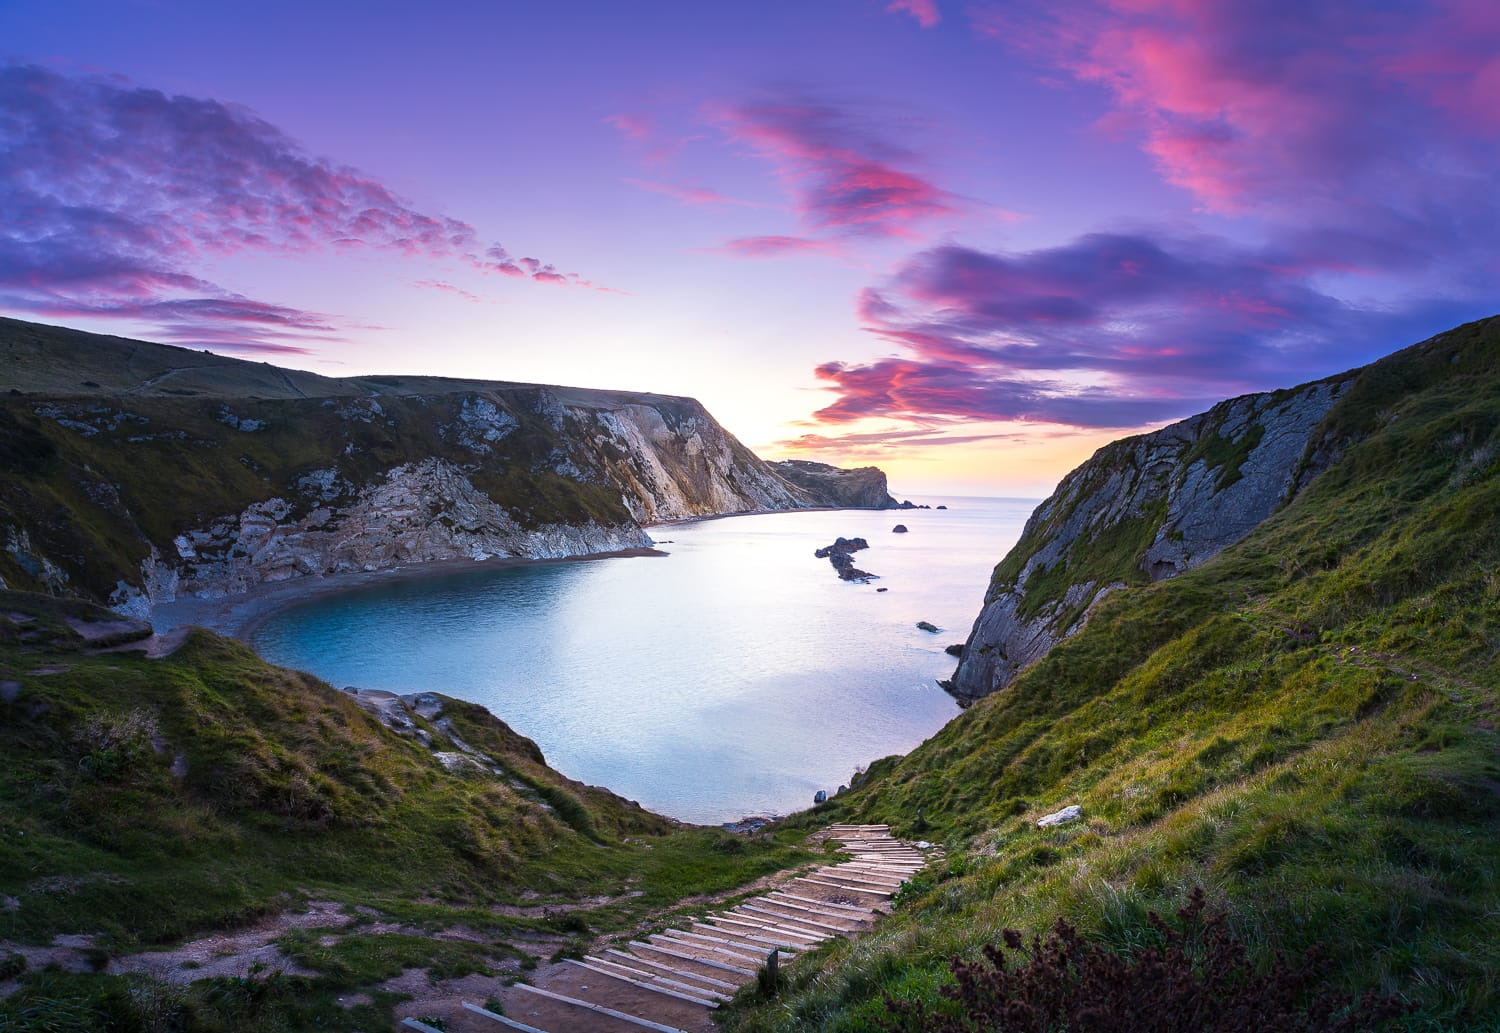 Man-O-War Bay, Dorset, England